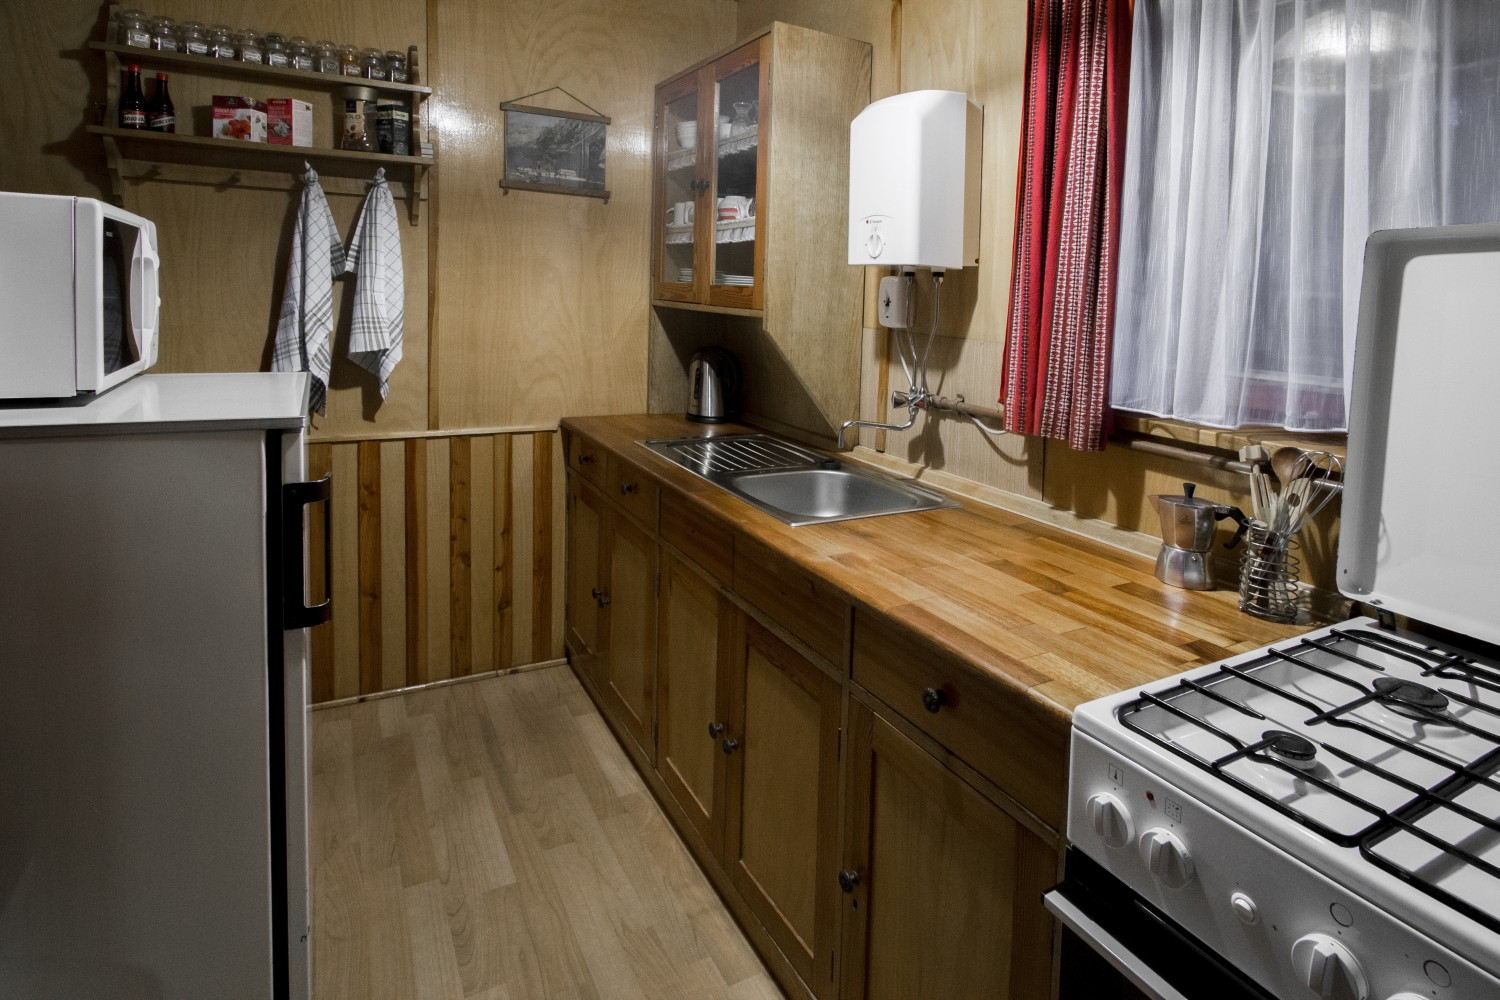 Chata 526 - kuchyn / Cottage 526 - kitchen